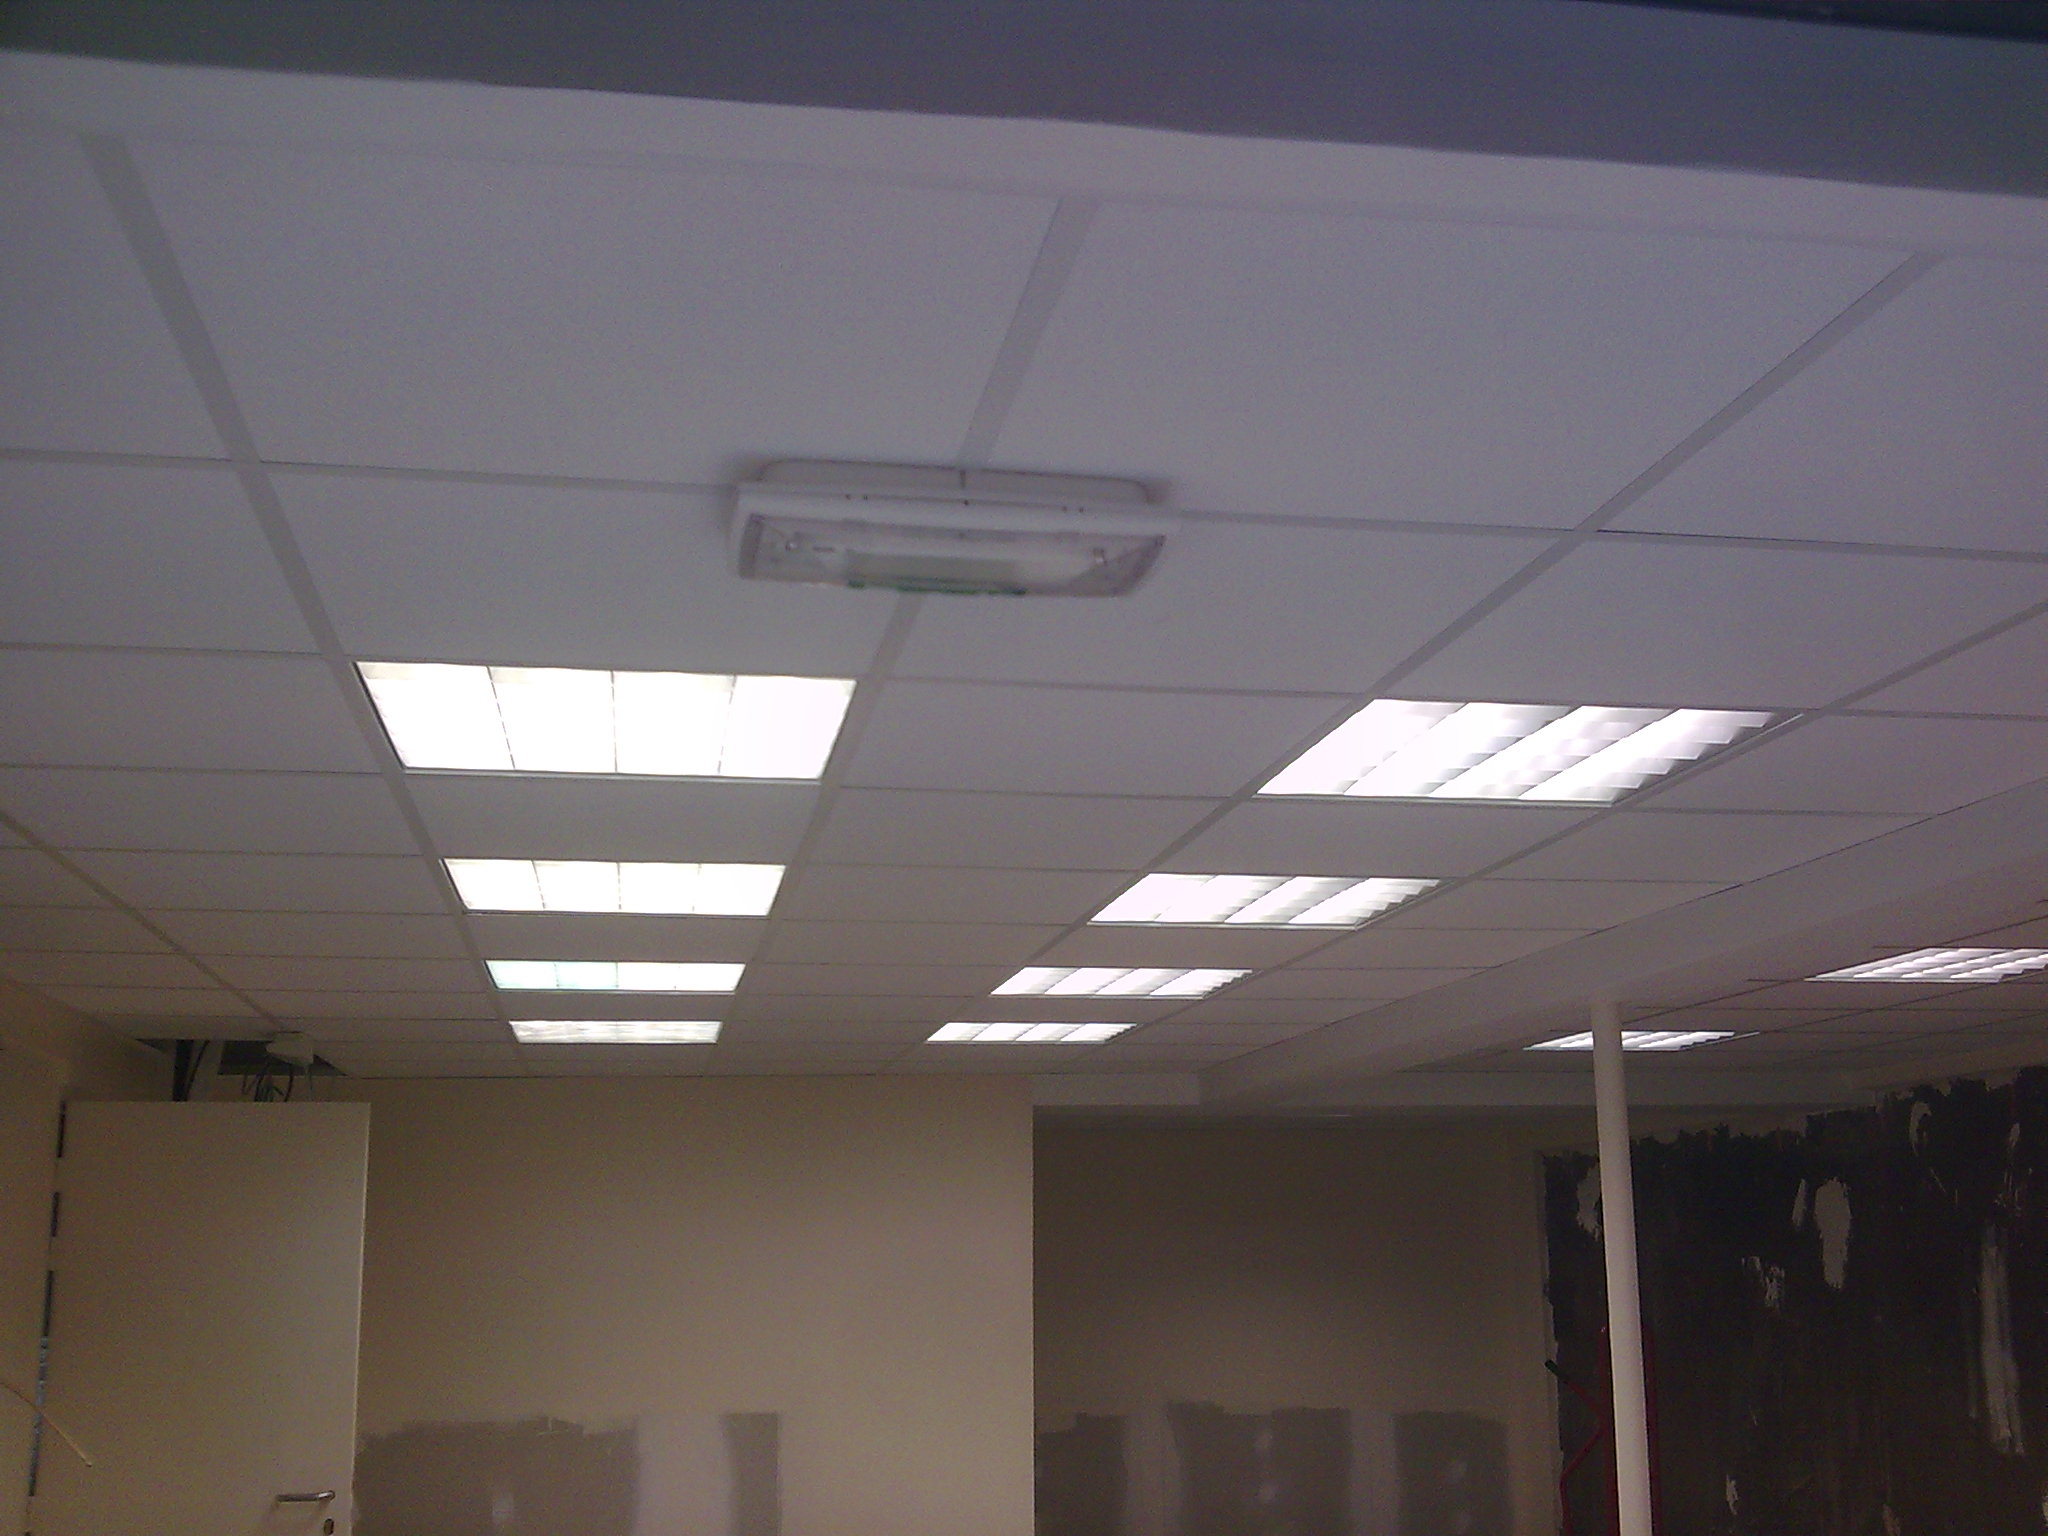 Plafond suspendu en dalles de 60 x 60 Activ Renovation  Epinal